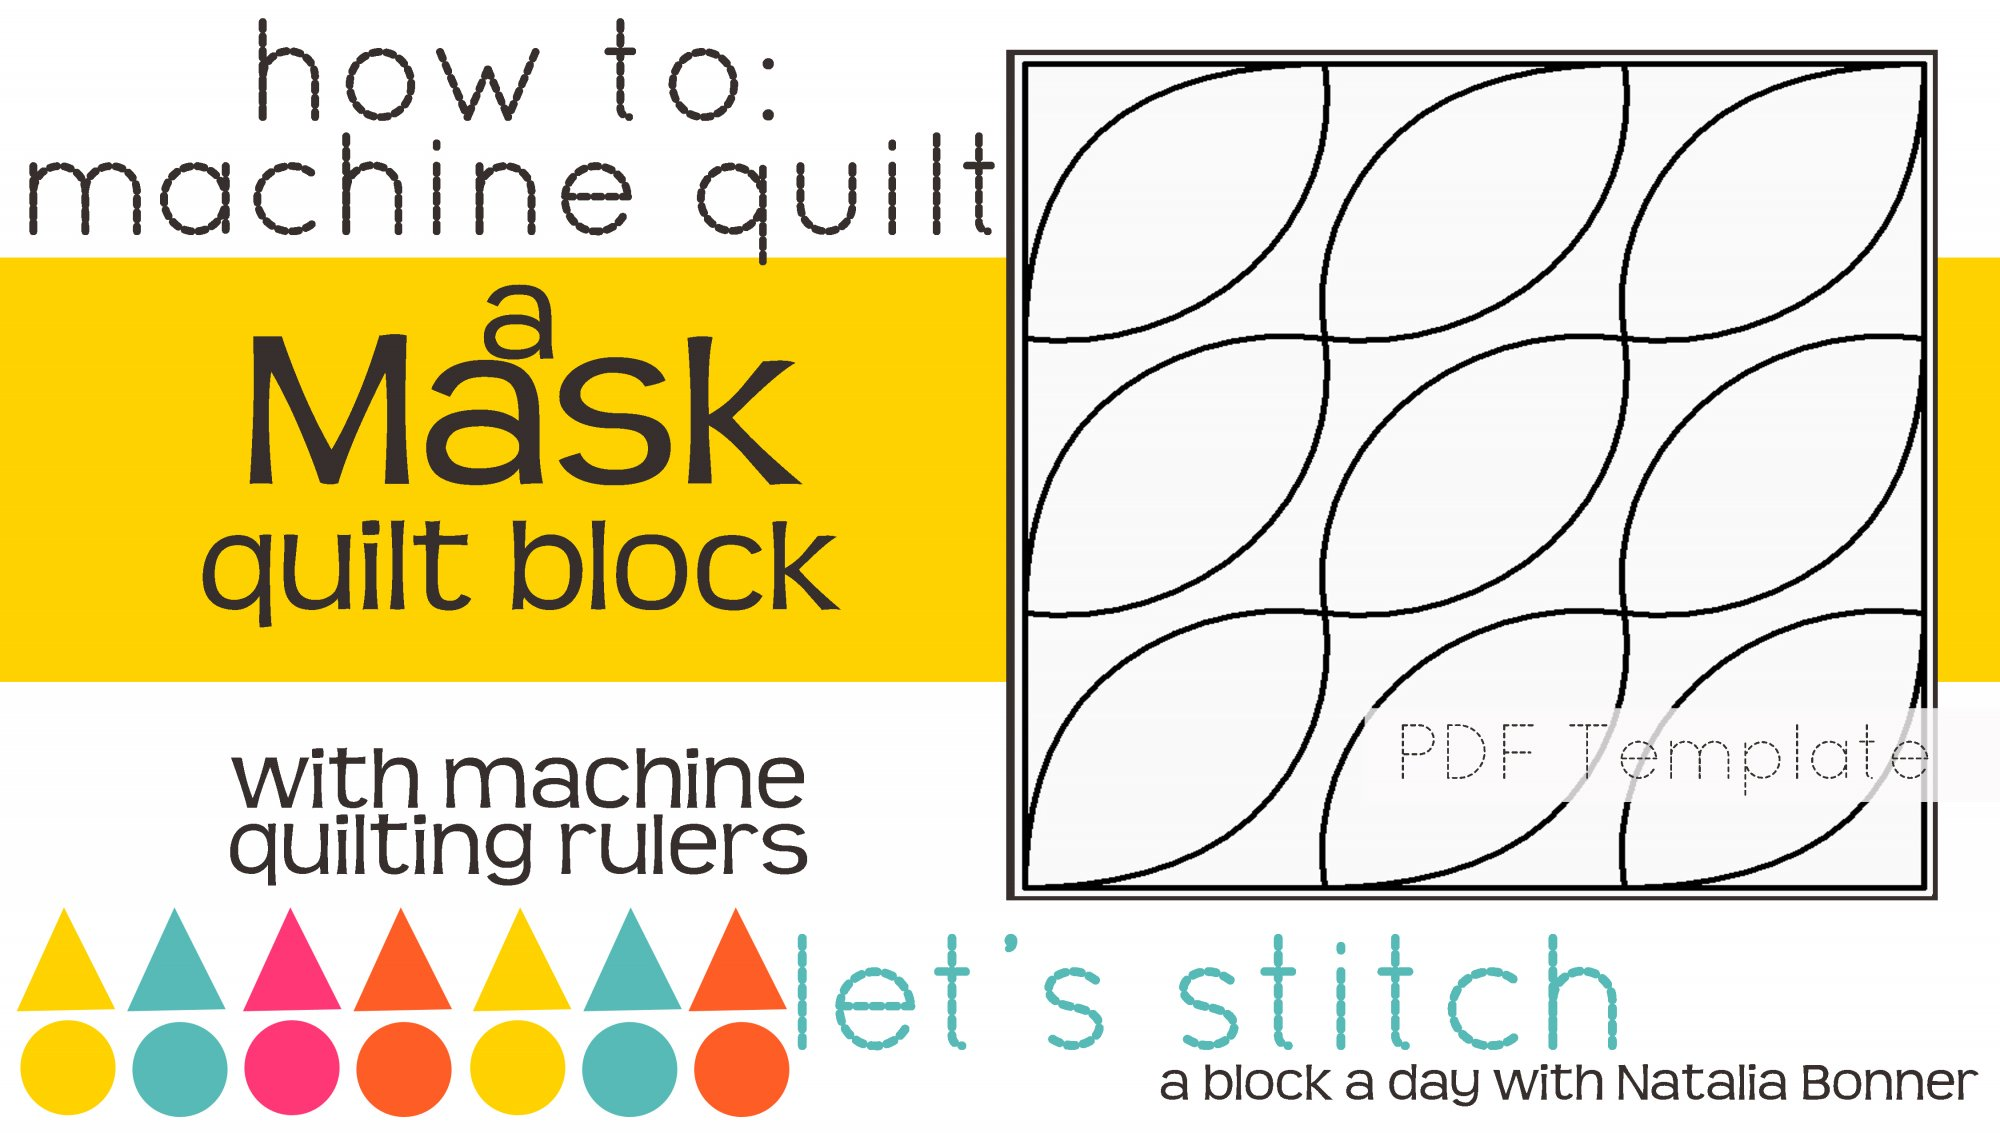 Let's Stitch - A Block a Day With Natalia Bonner - PDF - Mask